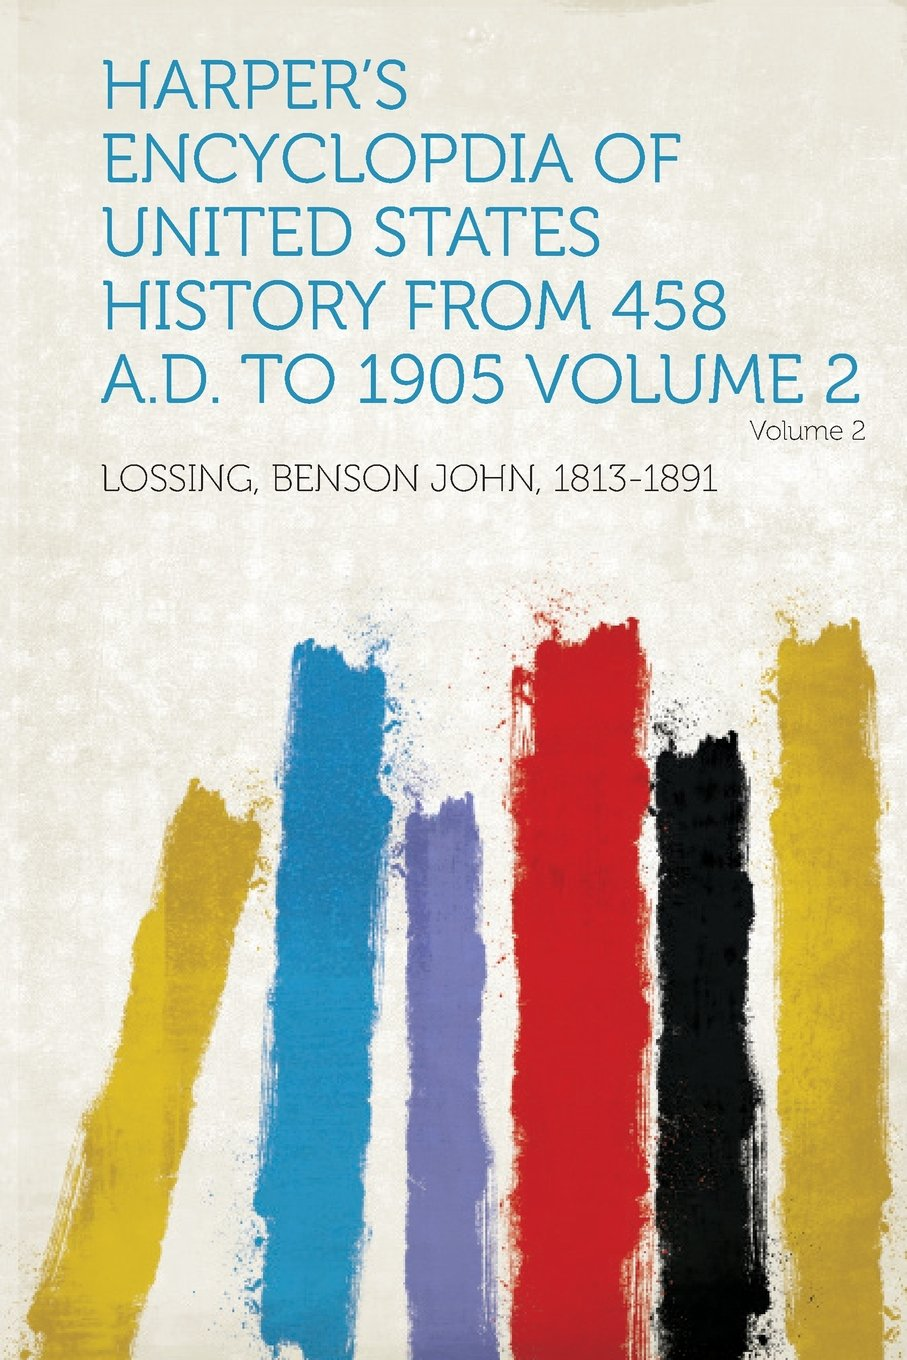 Download Harper's Encyclopdia of United States History from 458 A.D. to 1905 Volume 2 ebook